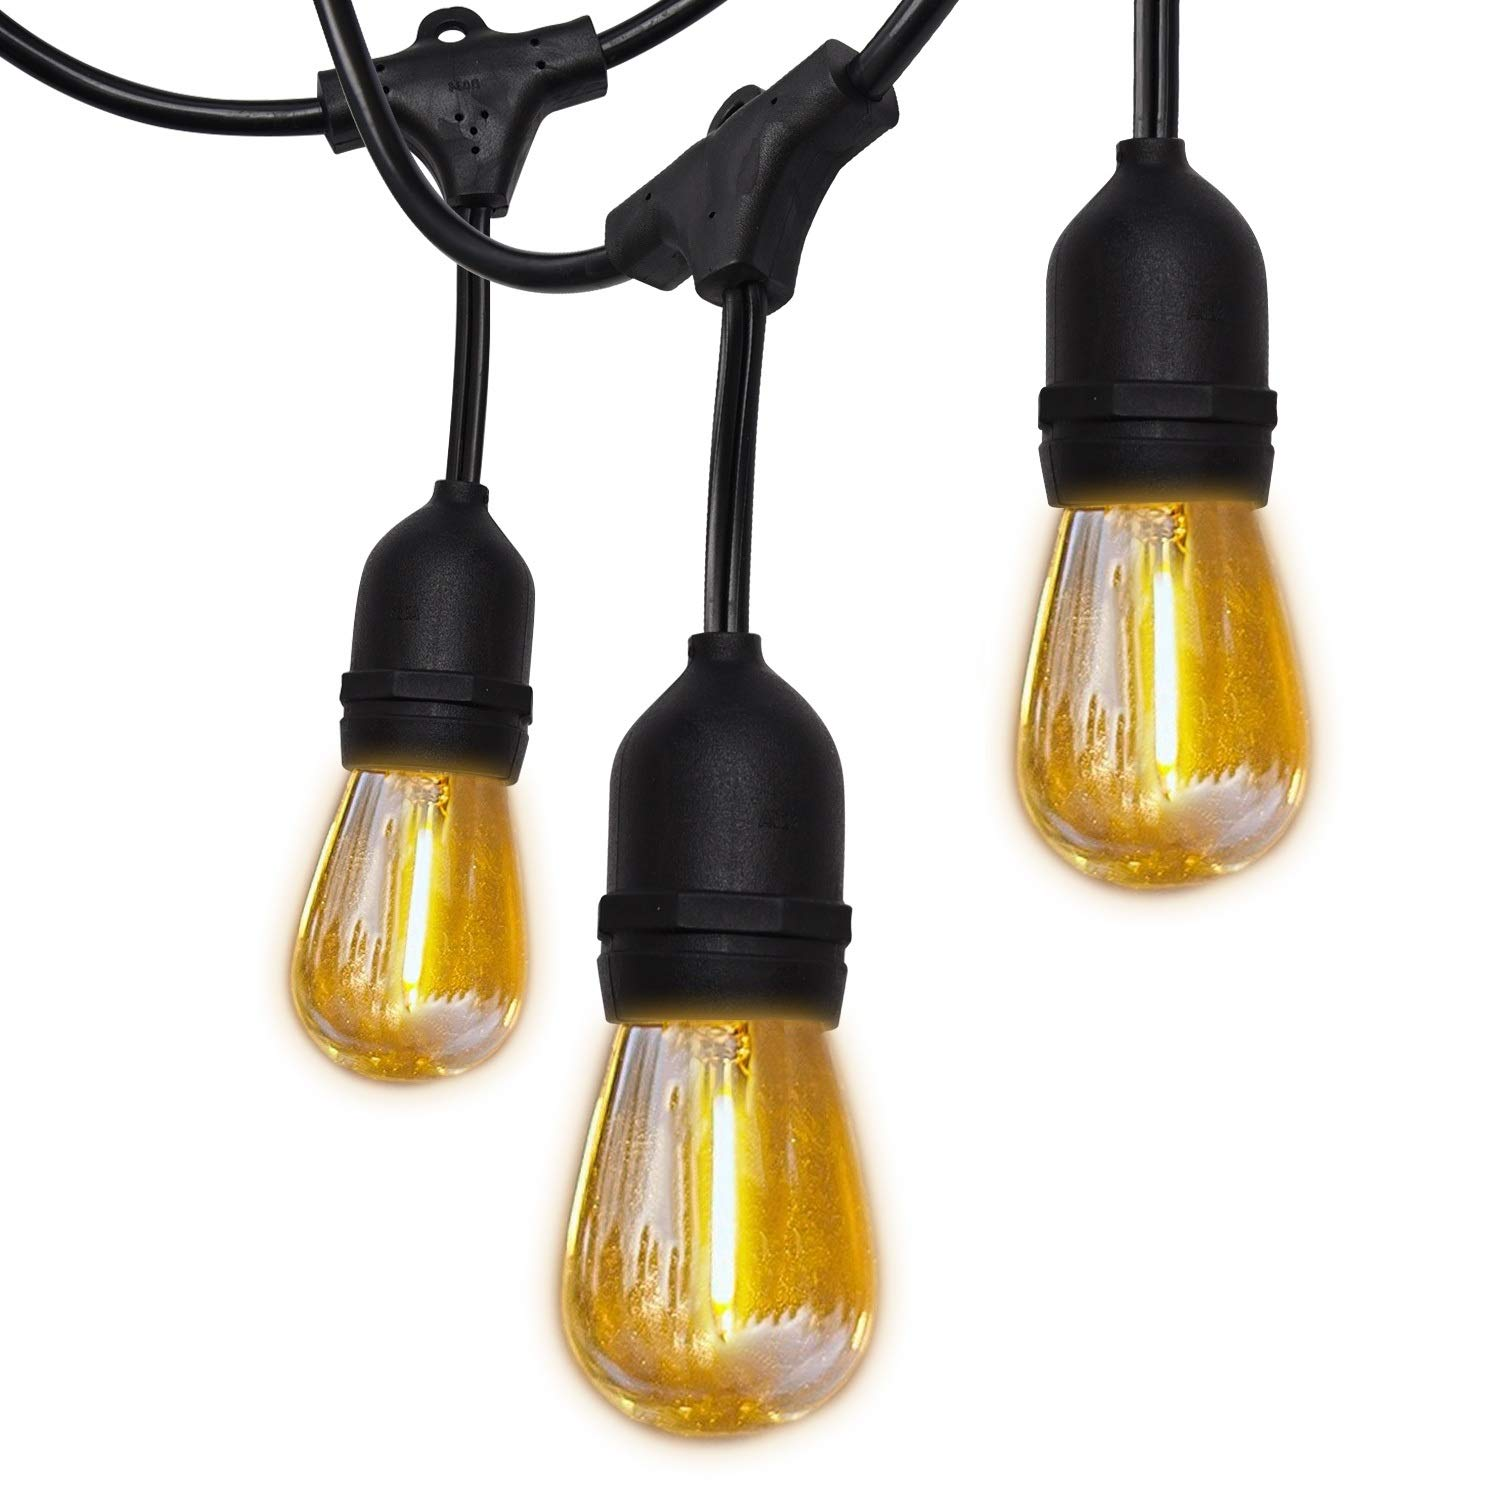 SUPERDANNY 52FT Shatterproof LED Outdoor String Lights UL Approval Commercial Grade Waterproof 26 (2 for Spare) Edison Bulbs 30pcs Cable Ties Weatherproof Plastic Bulb